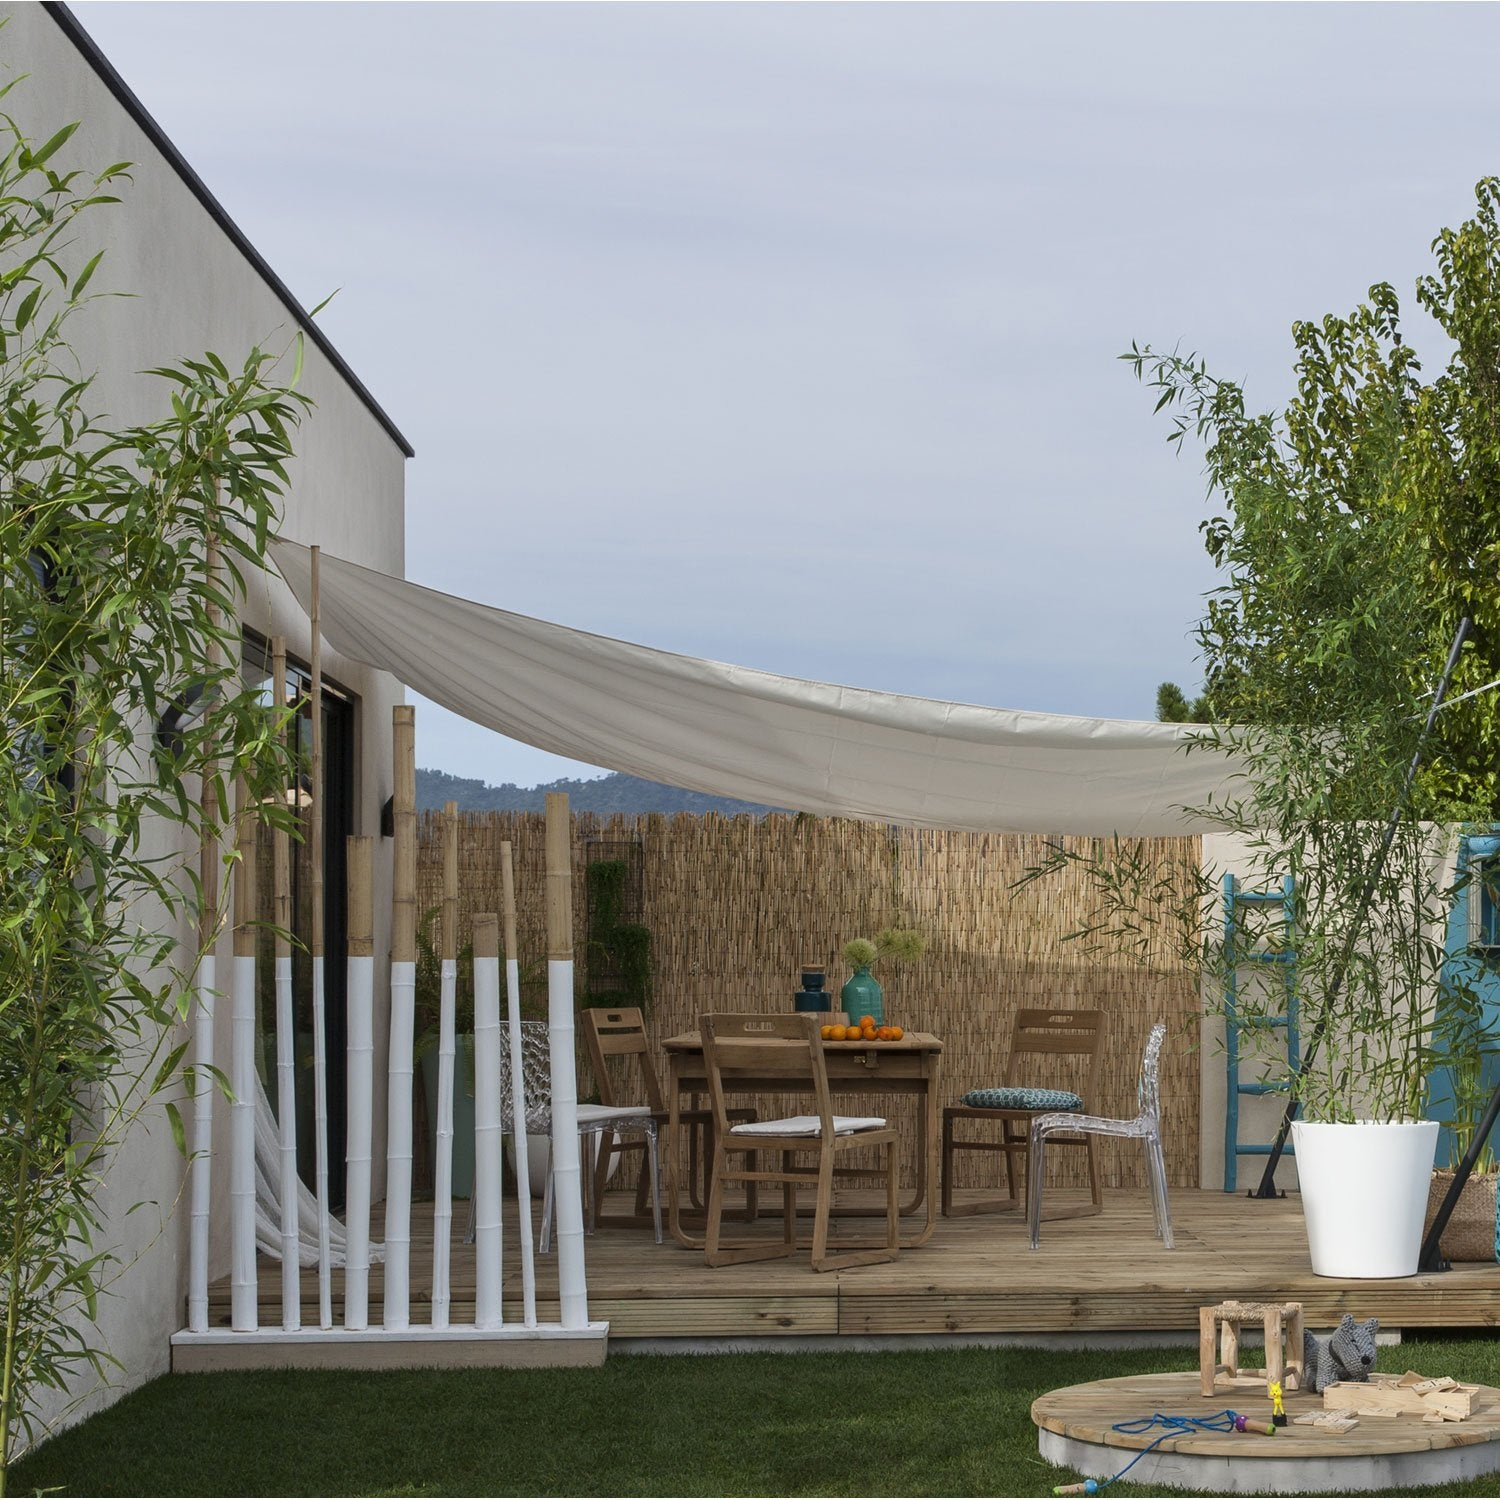 Voile d 39 ombrage rectangulaire naterial blanc ivoire n 5 300x400 cm le - Voile ombrage leroy merlin ...